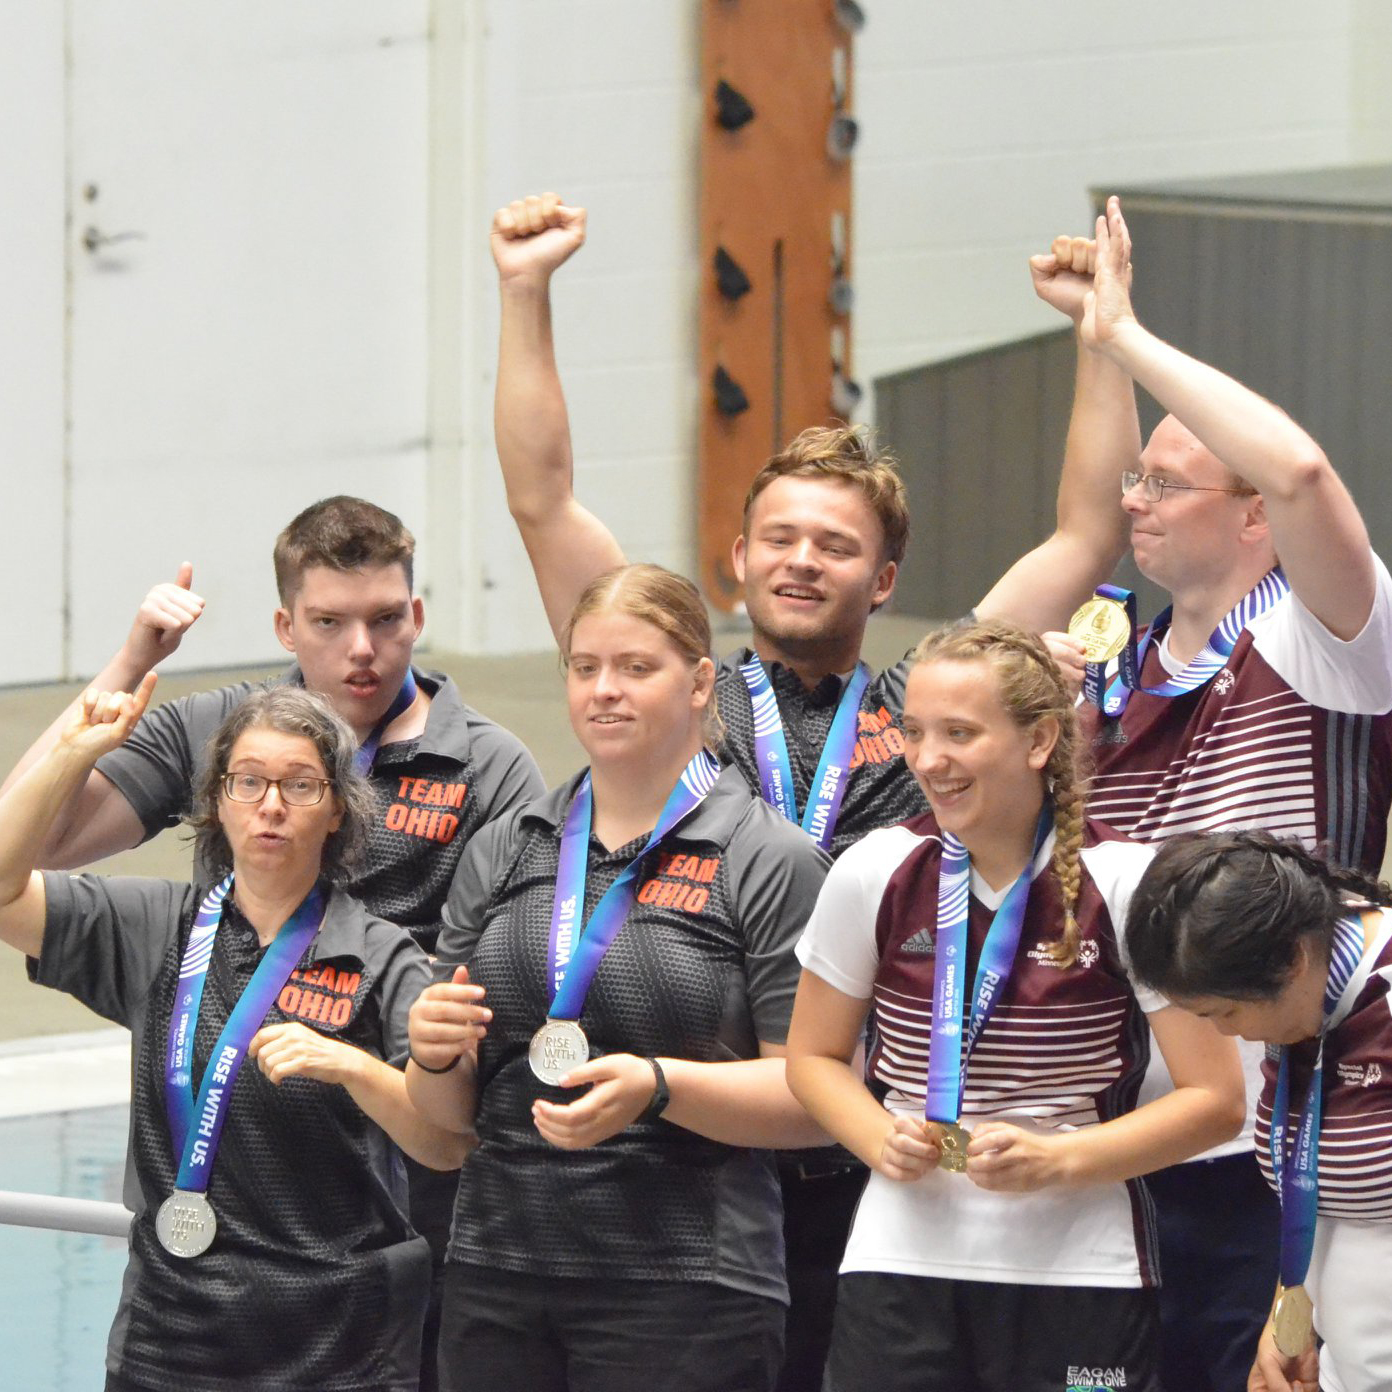 six young athletes wearing medals and cheering